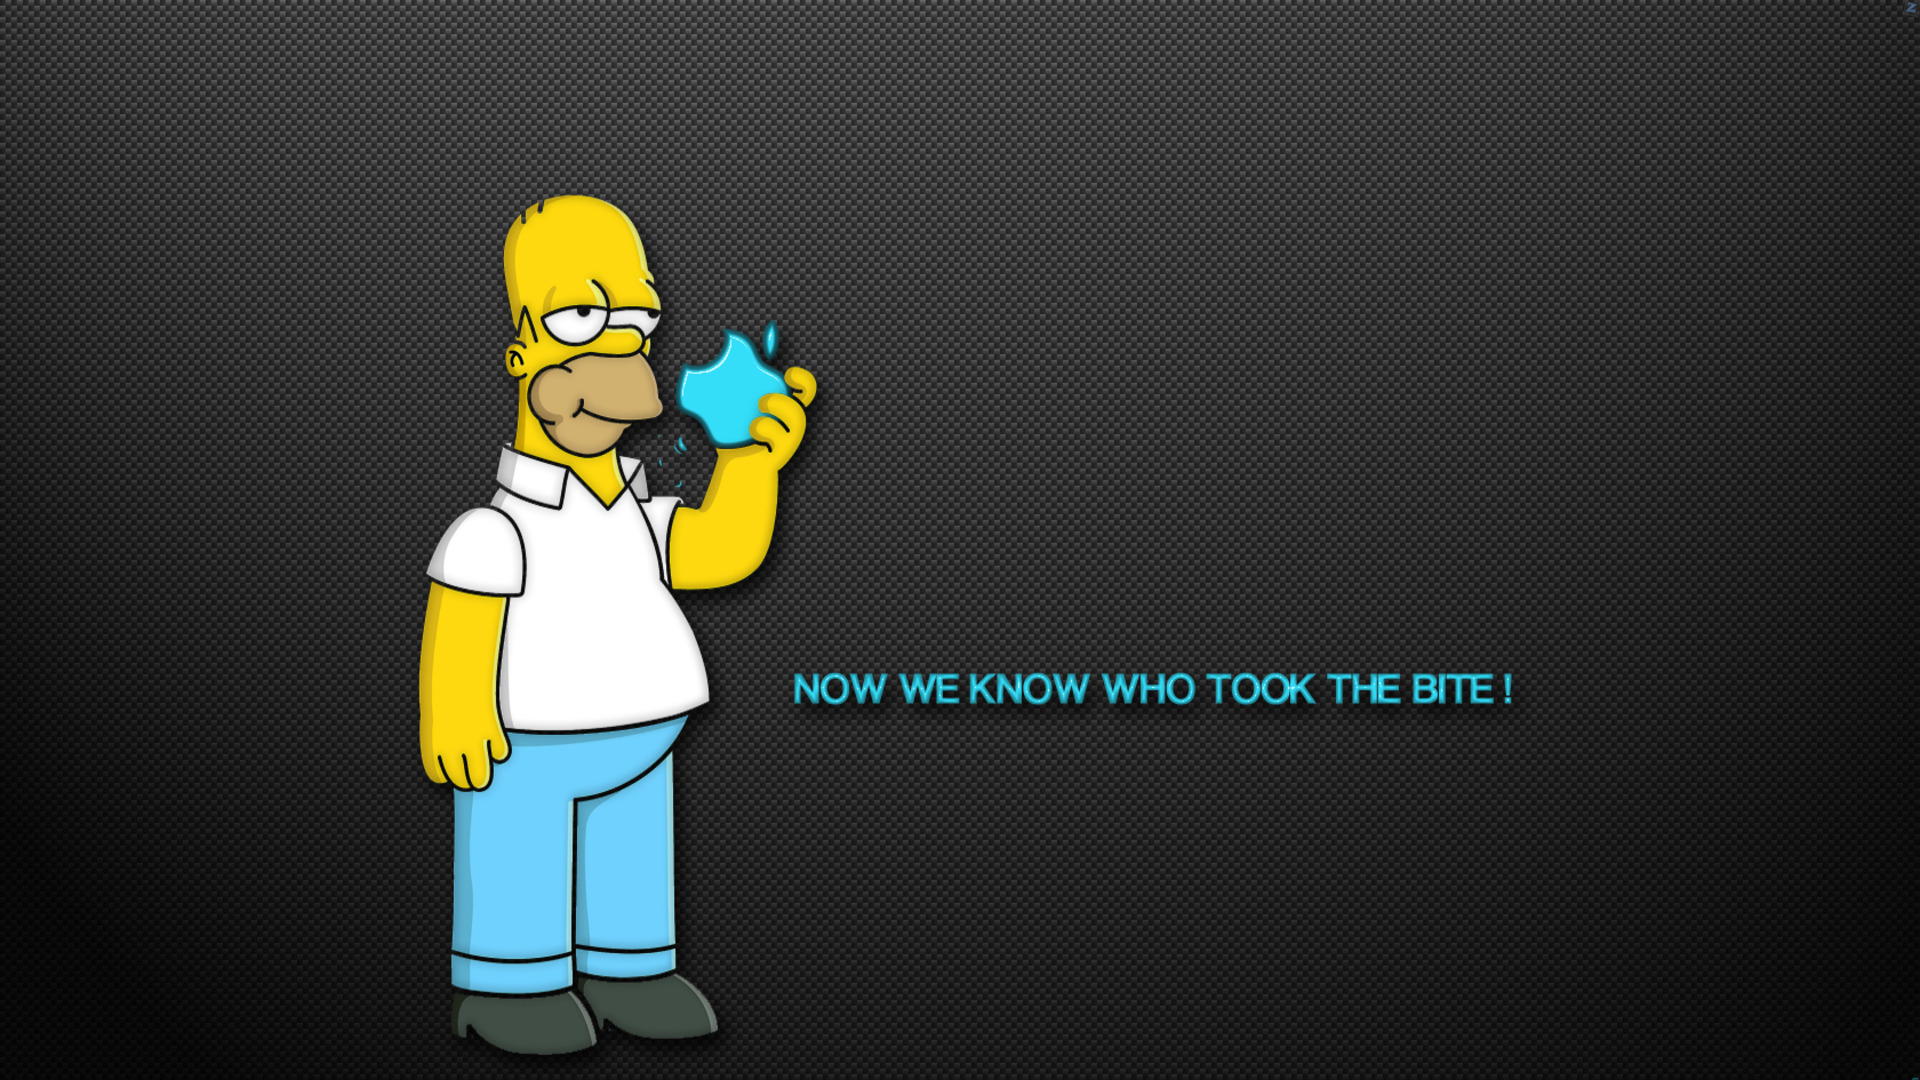 The Simpsons Homer Apple humor funny text quotes cartoon wallpaper 1920x1080